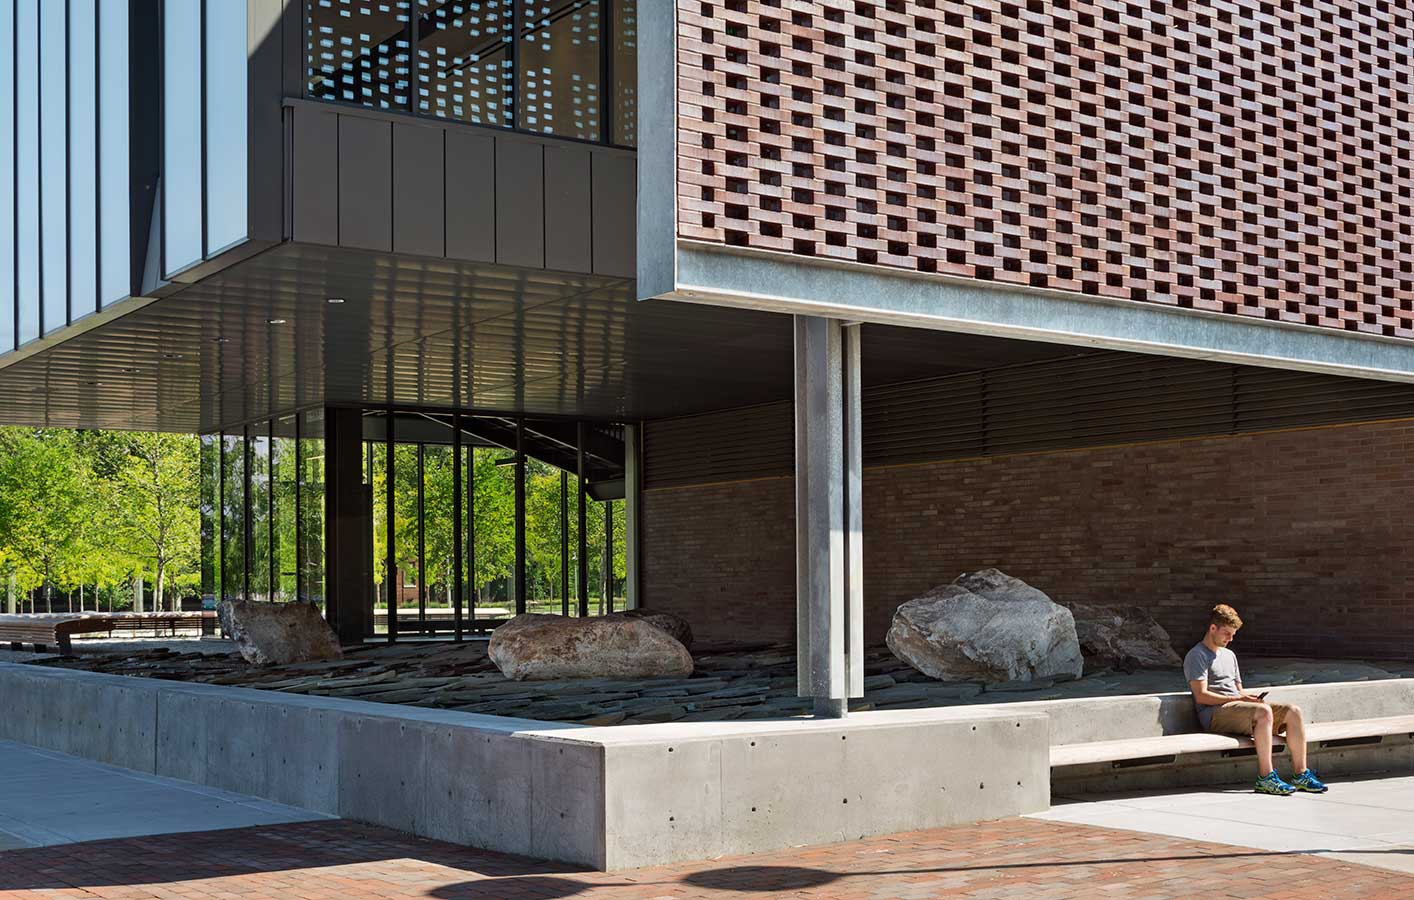 <p>The use of brick in the innovative solar shade honors the history of Philadelphia's Navy Yard and links the new facility to the existing buildings on the campus. &nbsp;<br /><br><small>&copy;Michael Moran/OTTO</small></p>